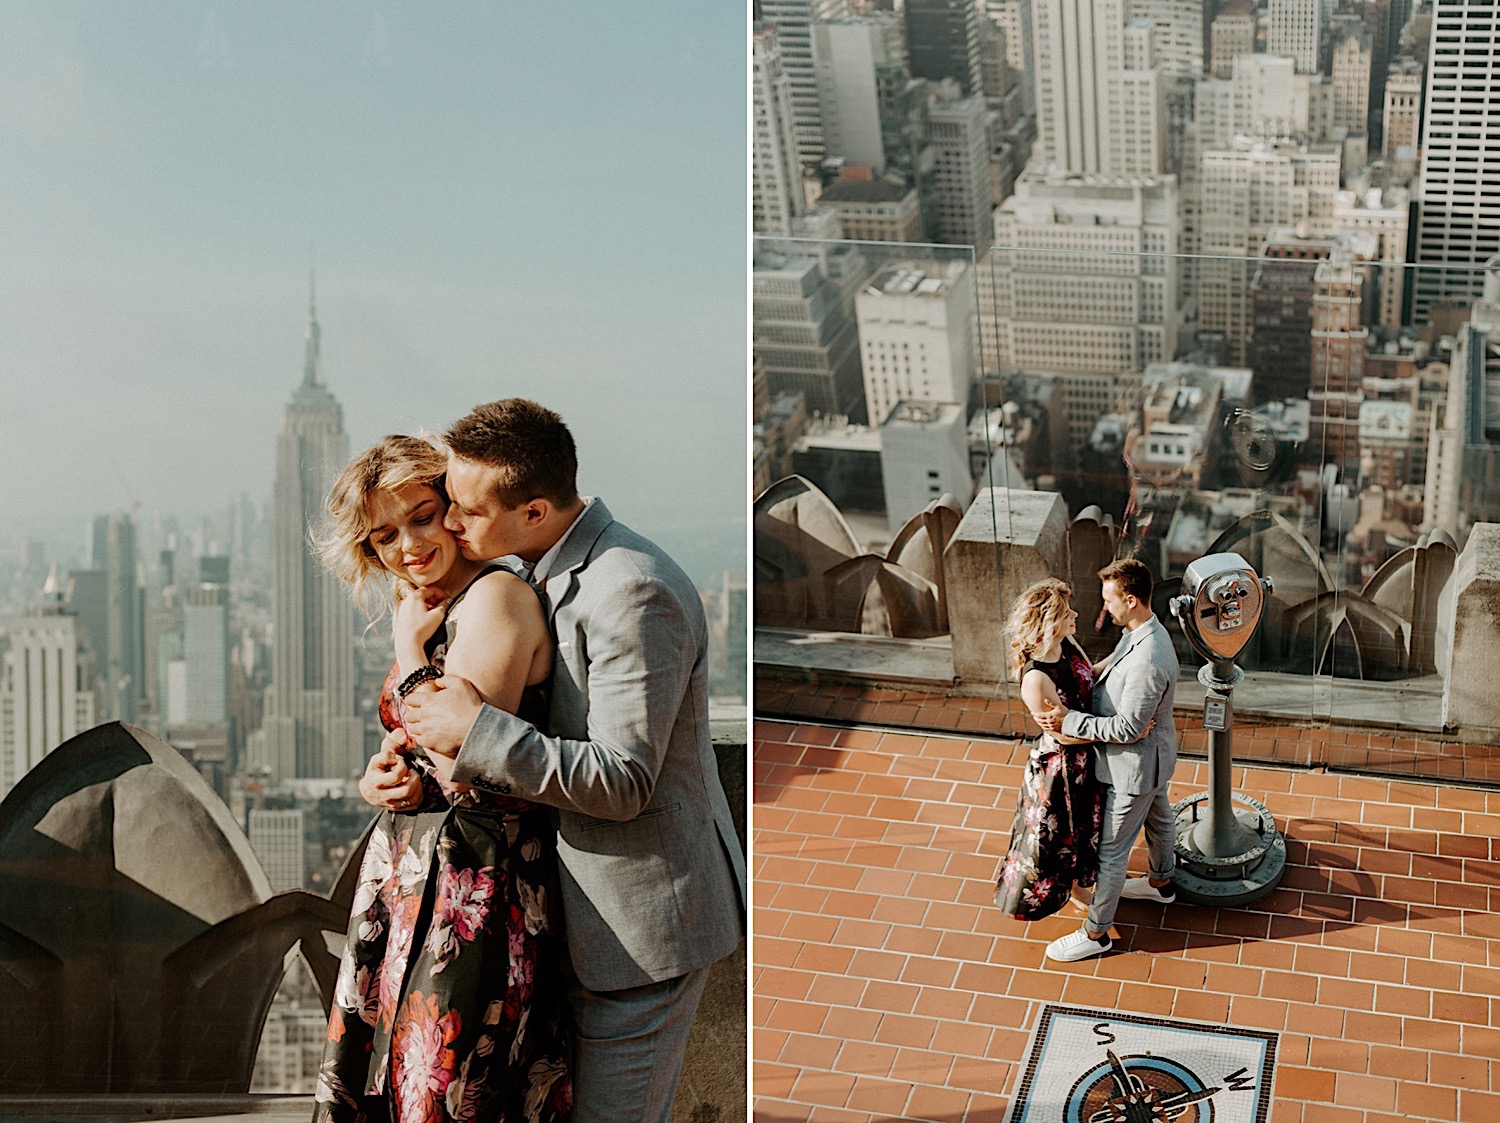 019 Top Of The Rock Engagement Photos NYC Engagement New York Wedding Photographer